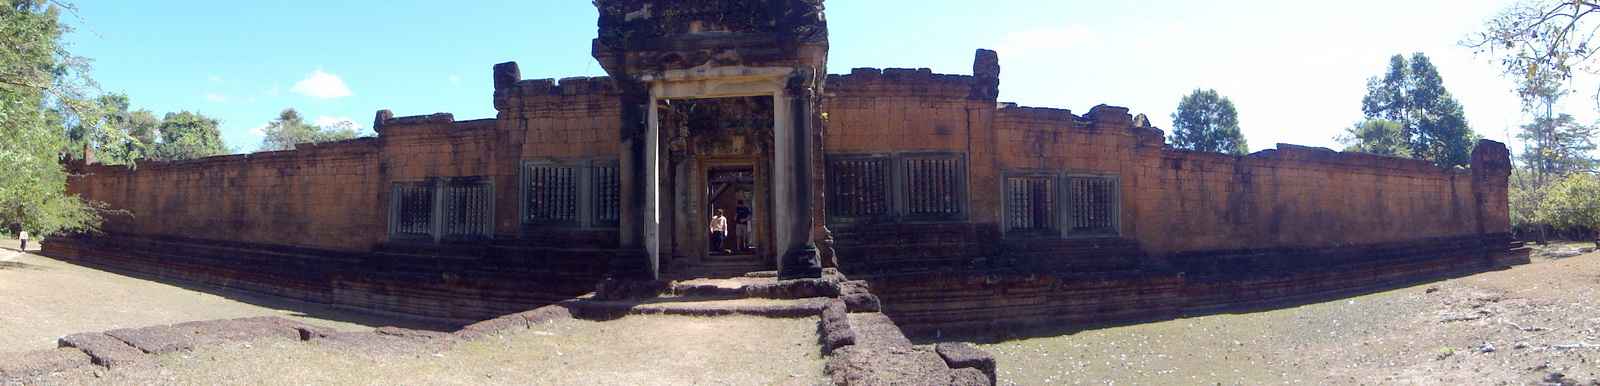 Banteay Samre Temple 12th century Angkor Wat style architecture 01